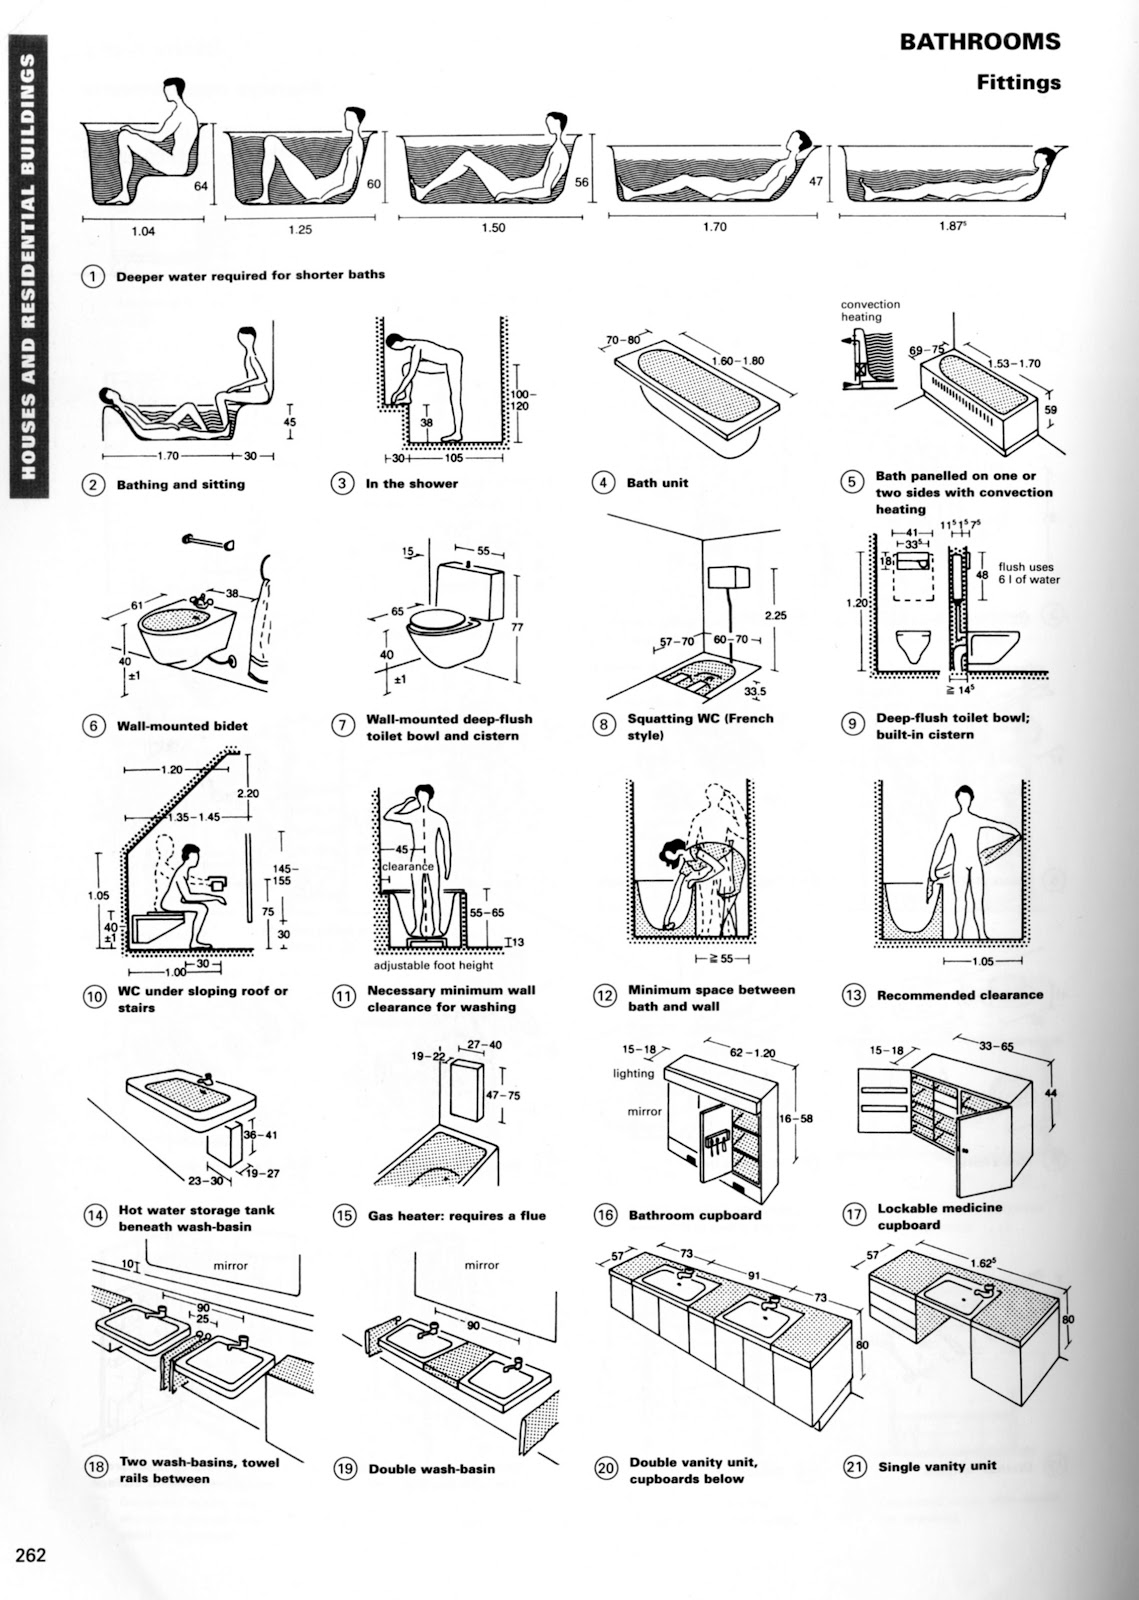 Architectural Standards For Museum Design Pdf